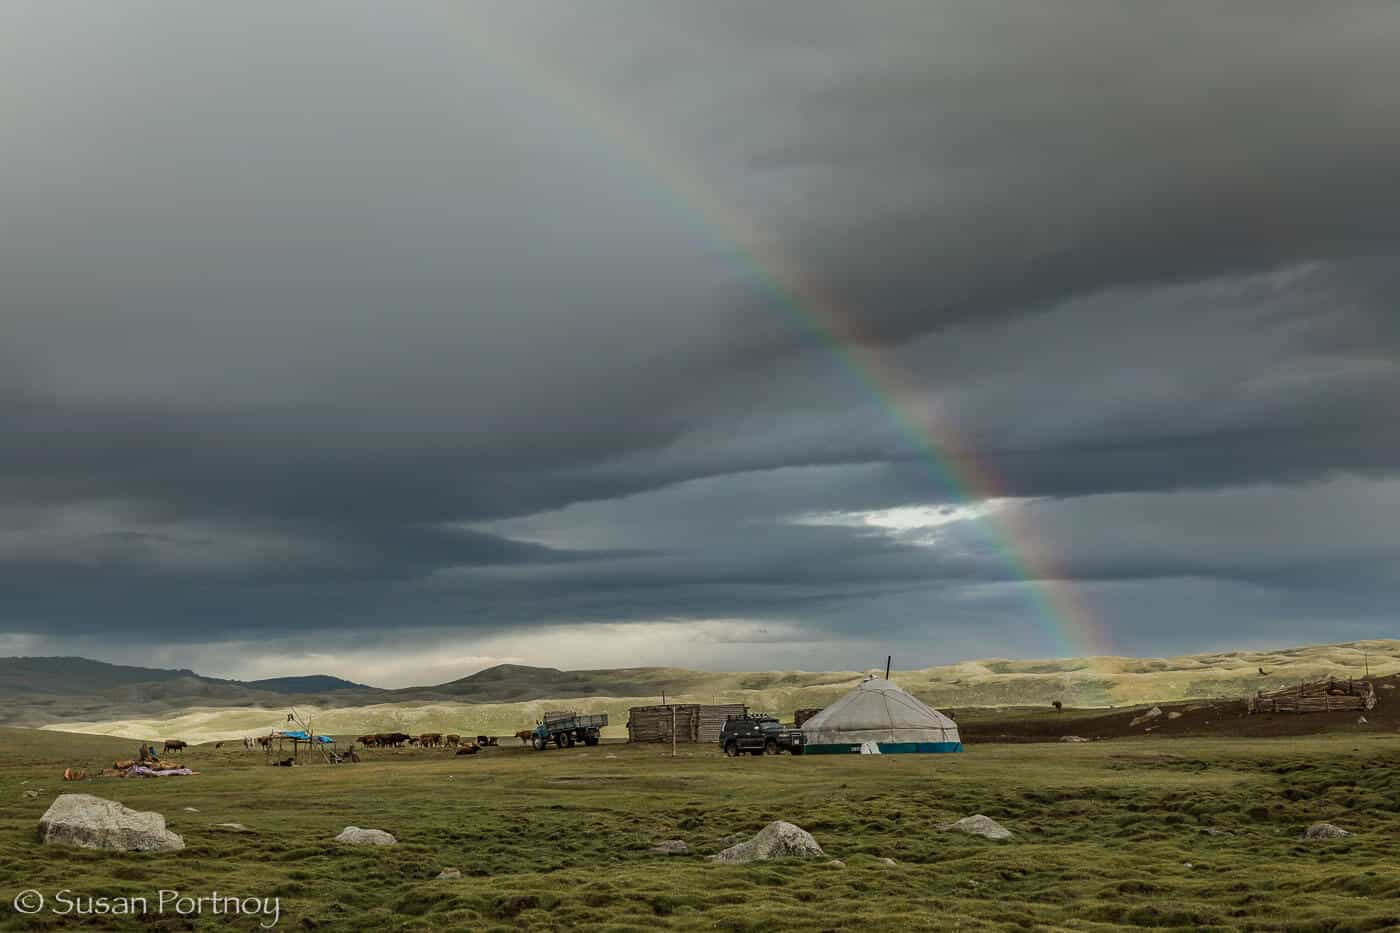 Mongolian Culture: Ger with Rainbow